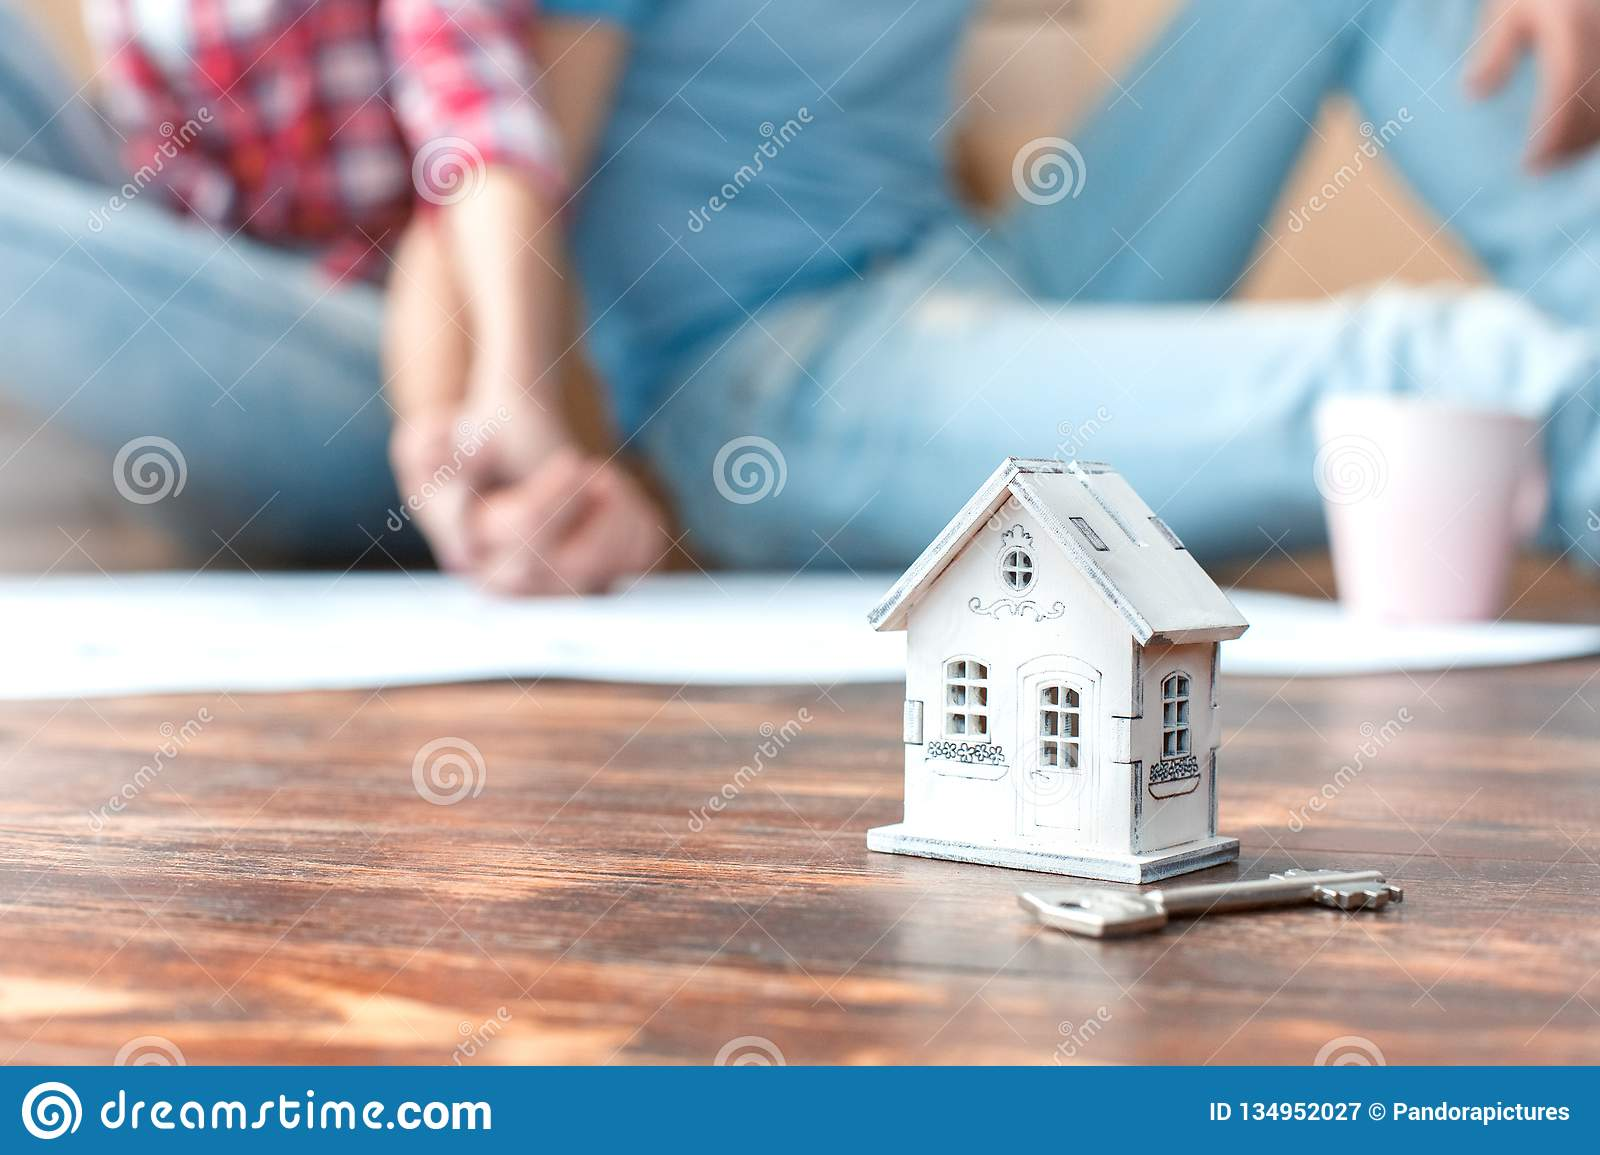 Young couple moving to new place sitting holding hands blurred house model close-up